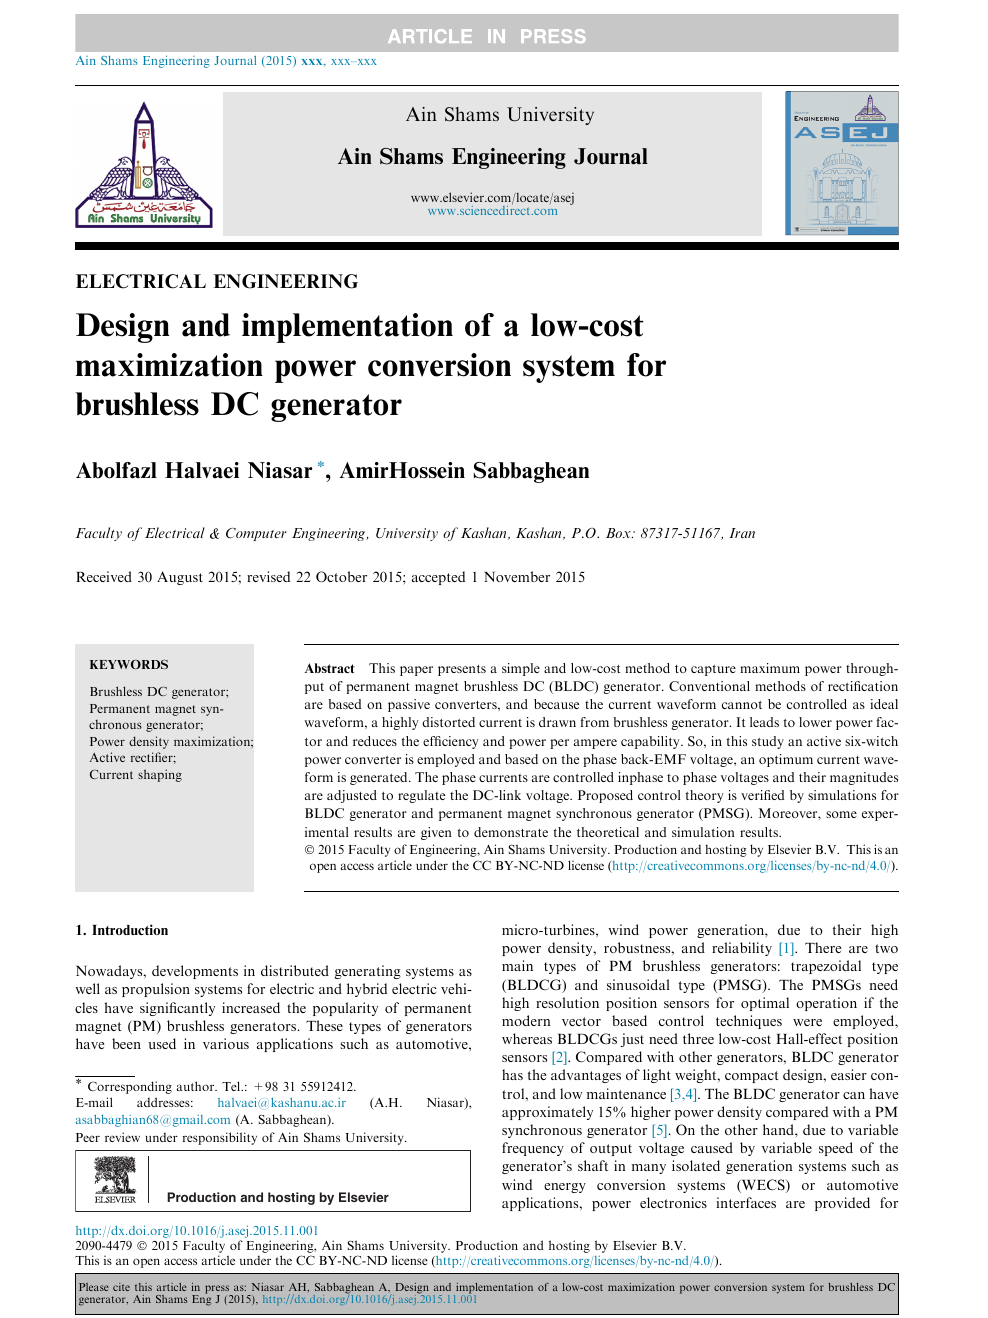 Design and implementation of a low-cost maximization power